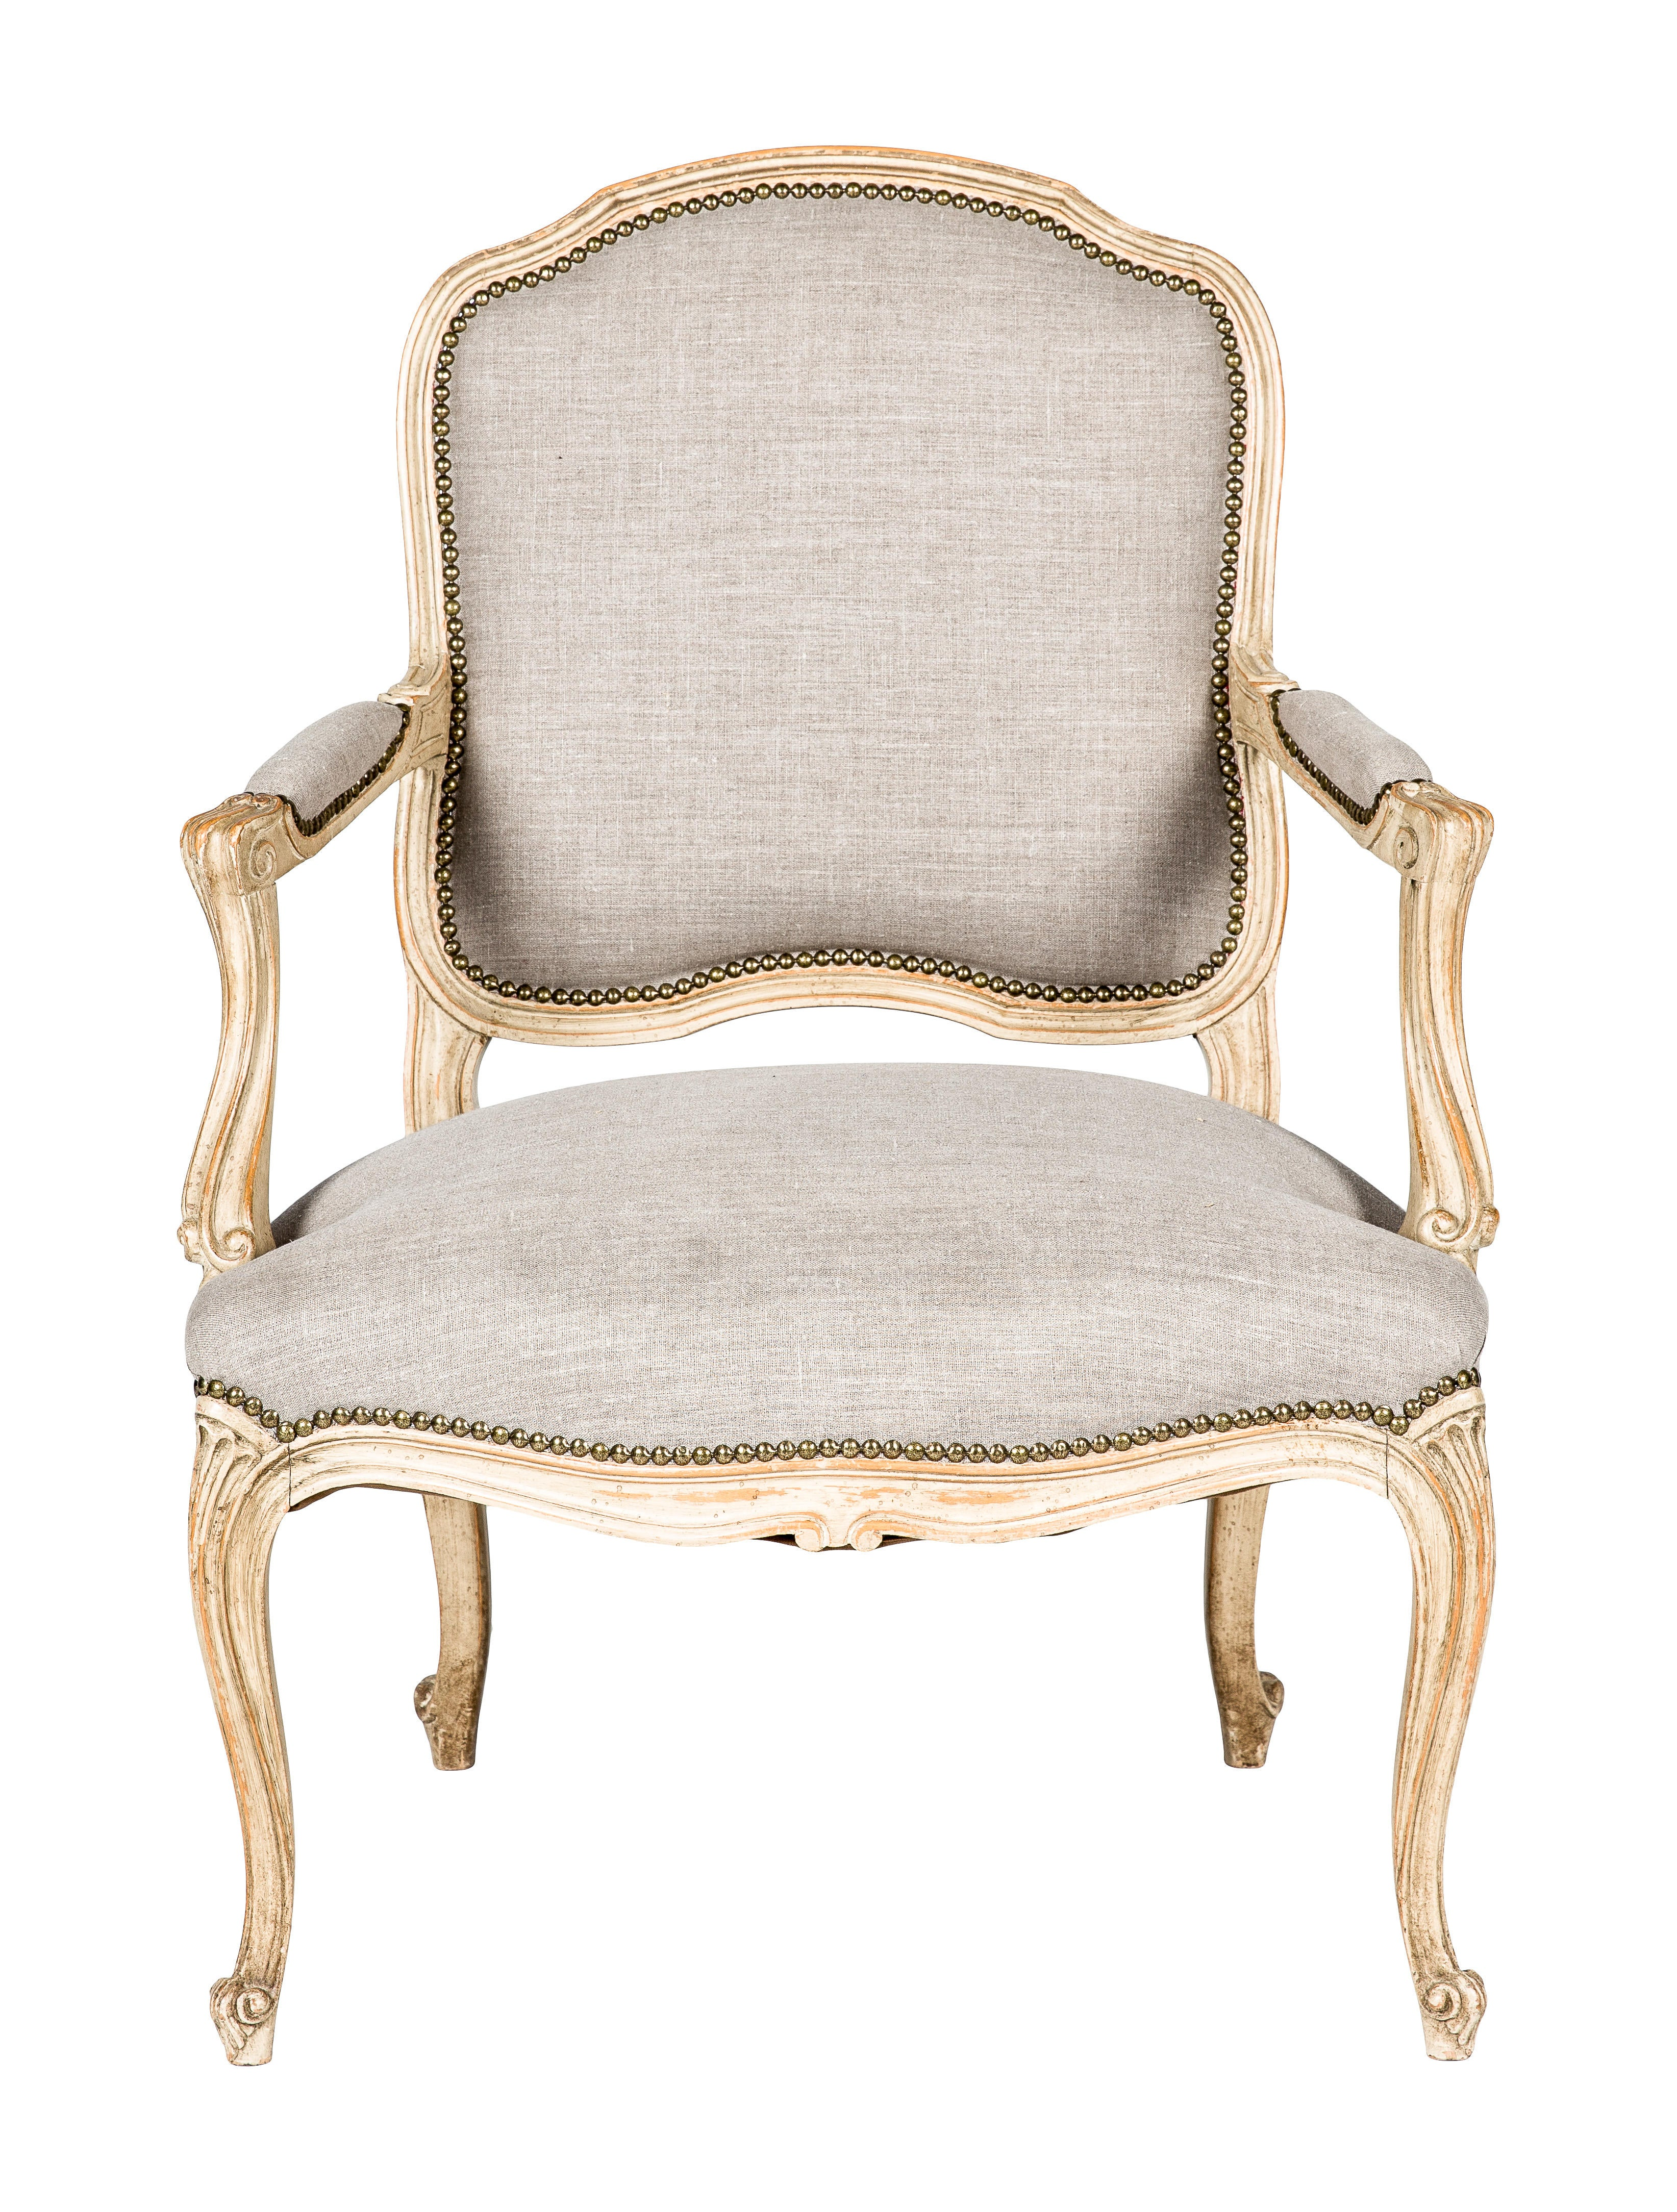 Chair louis xv style accent chairs furniture chair20046 the realreal - Louis th chairs ...